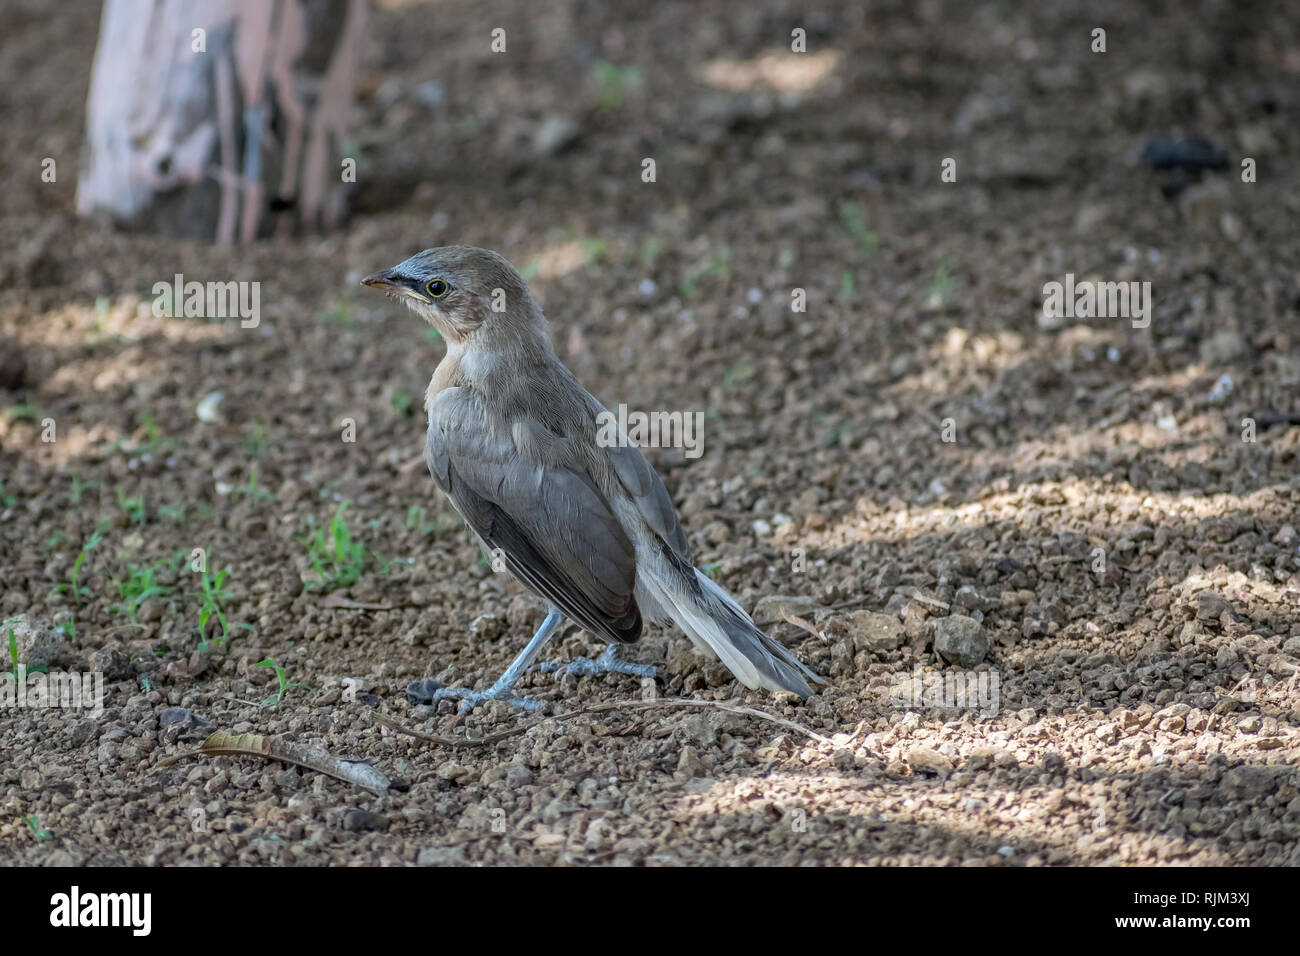 Long tailed sitting,Indian Robin or Copsychus fulicatus is a species of bird in the family Muscicapidae. Photographed in Sasan gir, Gujrat, India. - Stock Image